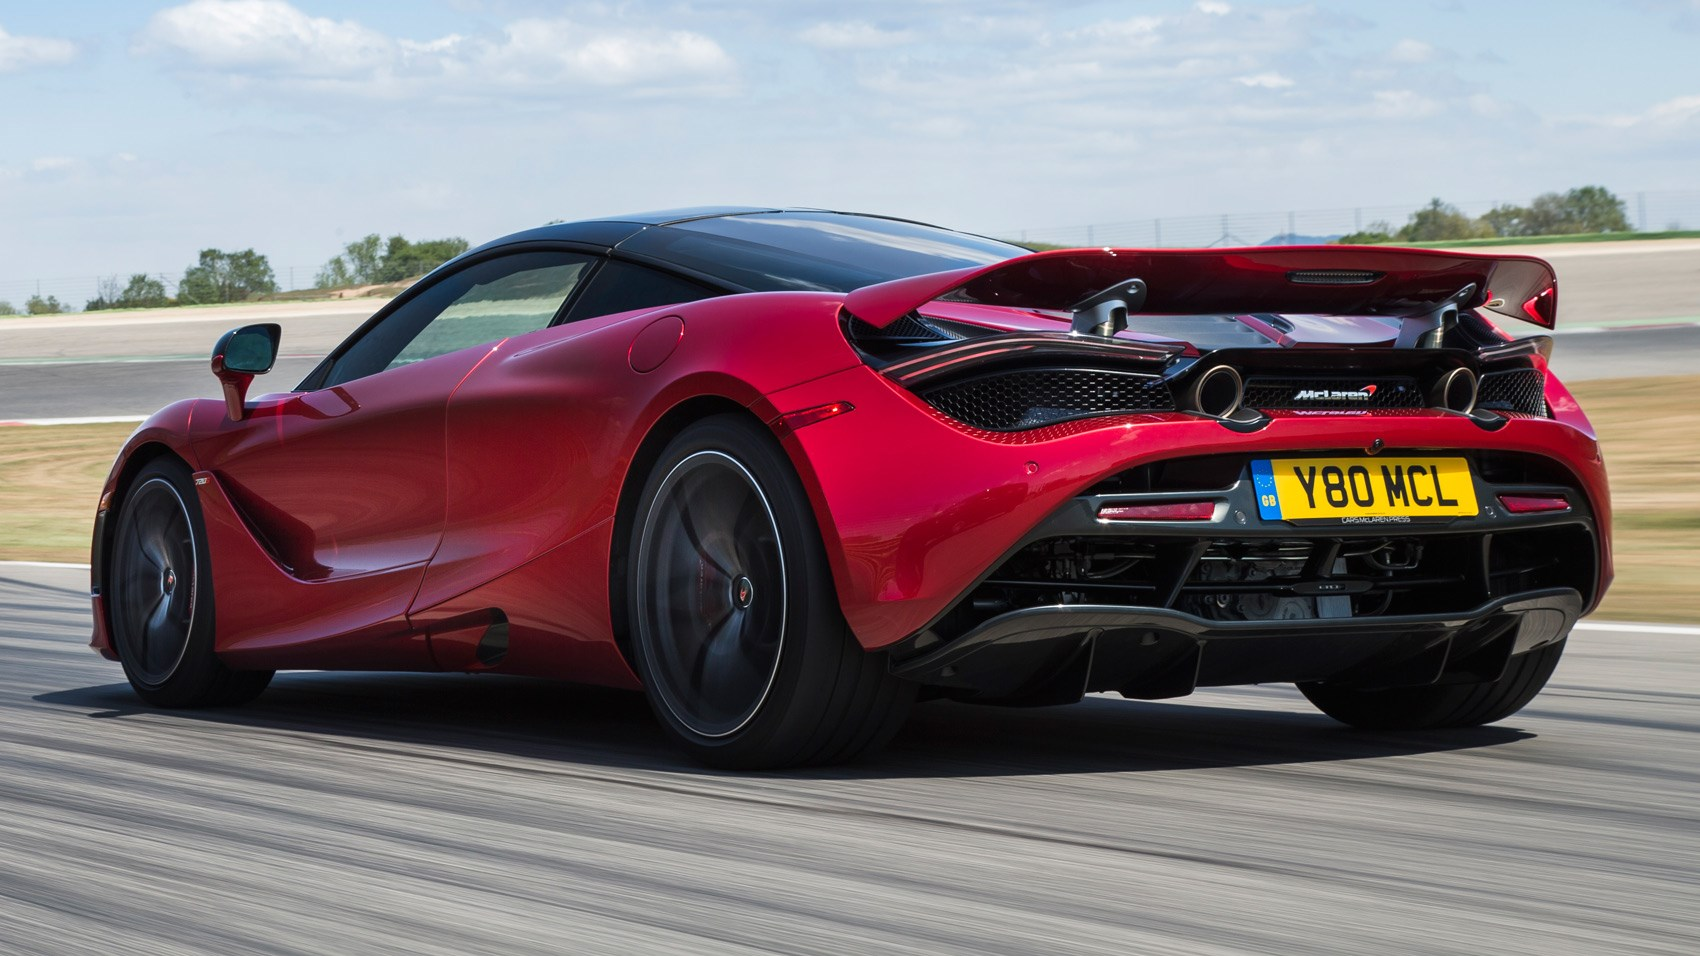 2014 Ferrari 458 Spider >> McLaren 720S (2017) review | CAR Magazine